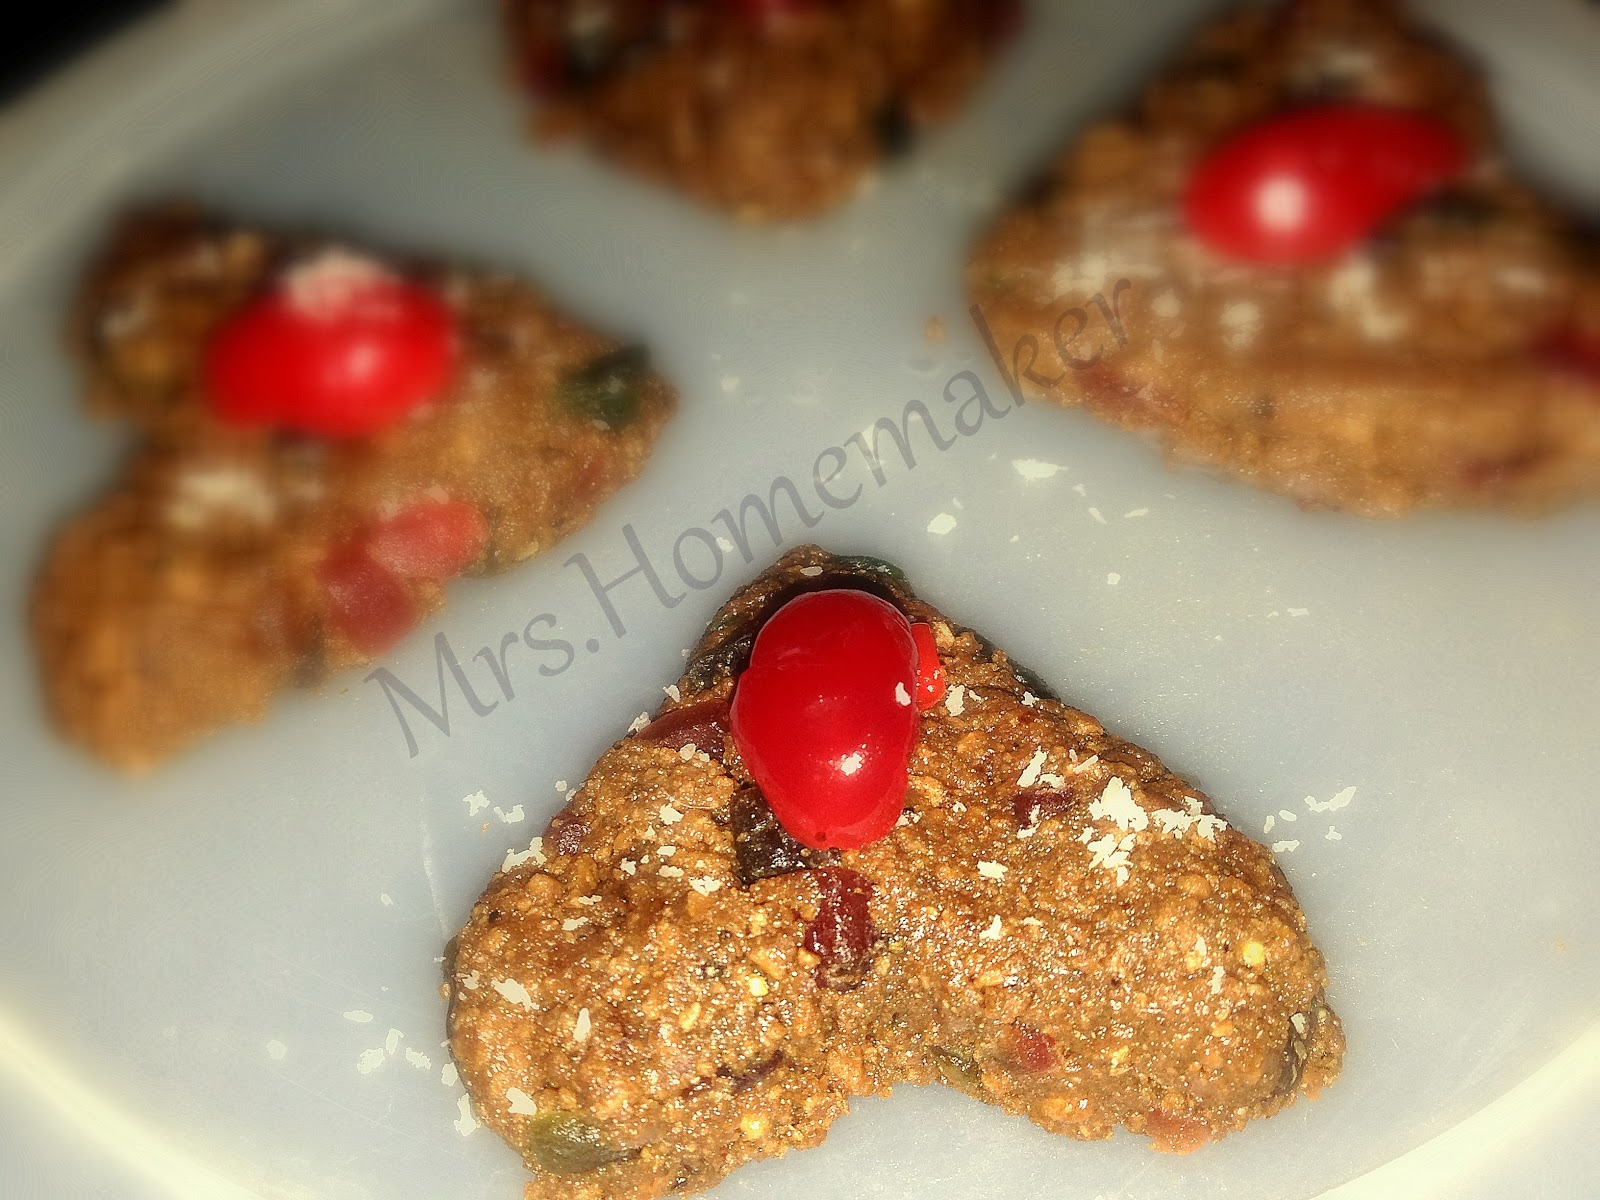 http://welcometotheworldofh4.blogspot.in/2014/02/choco-chips-cereal-heart-shape-tarts.html